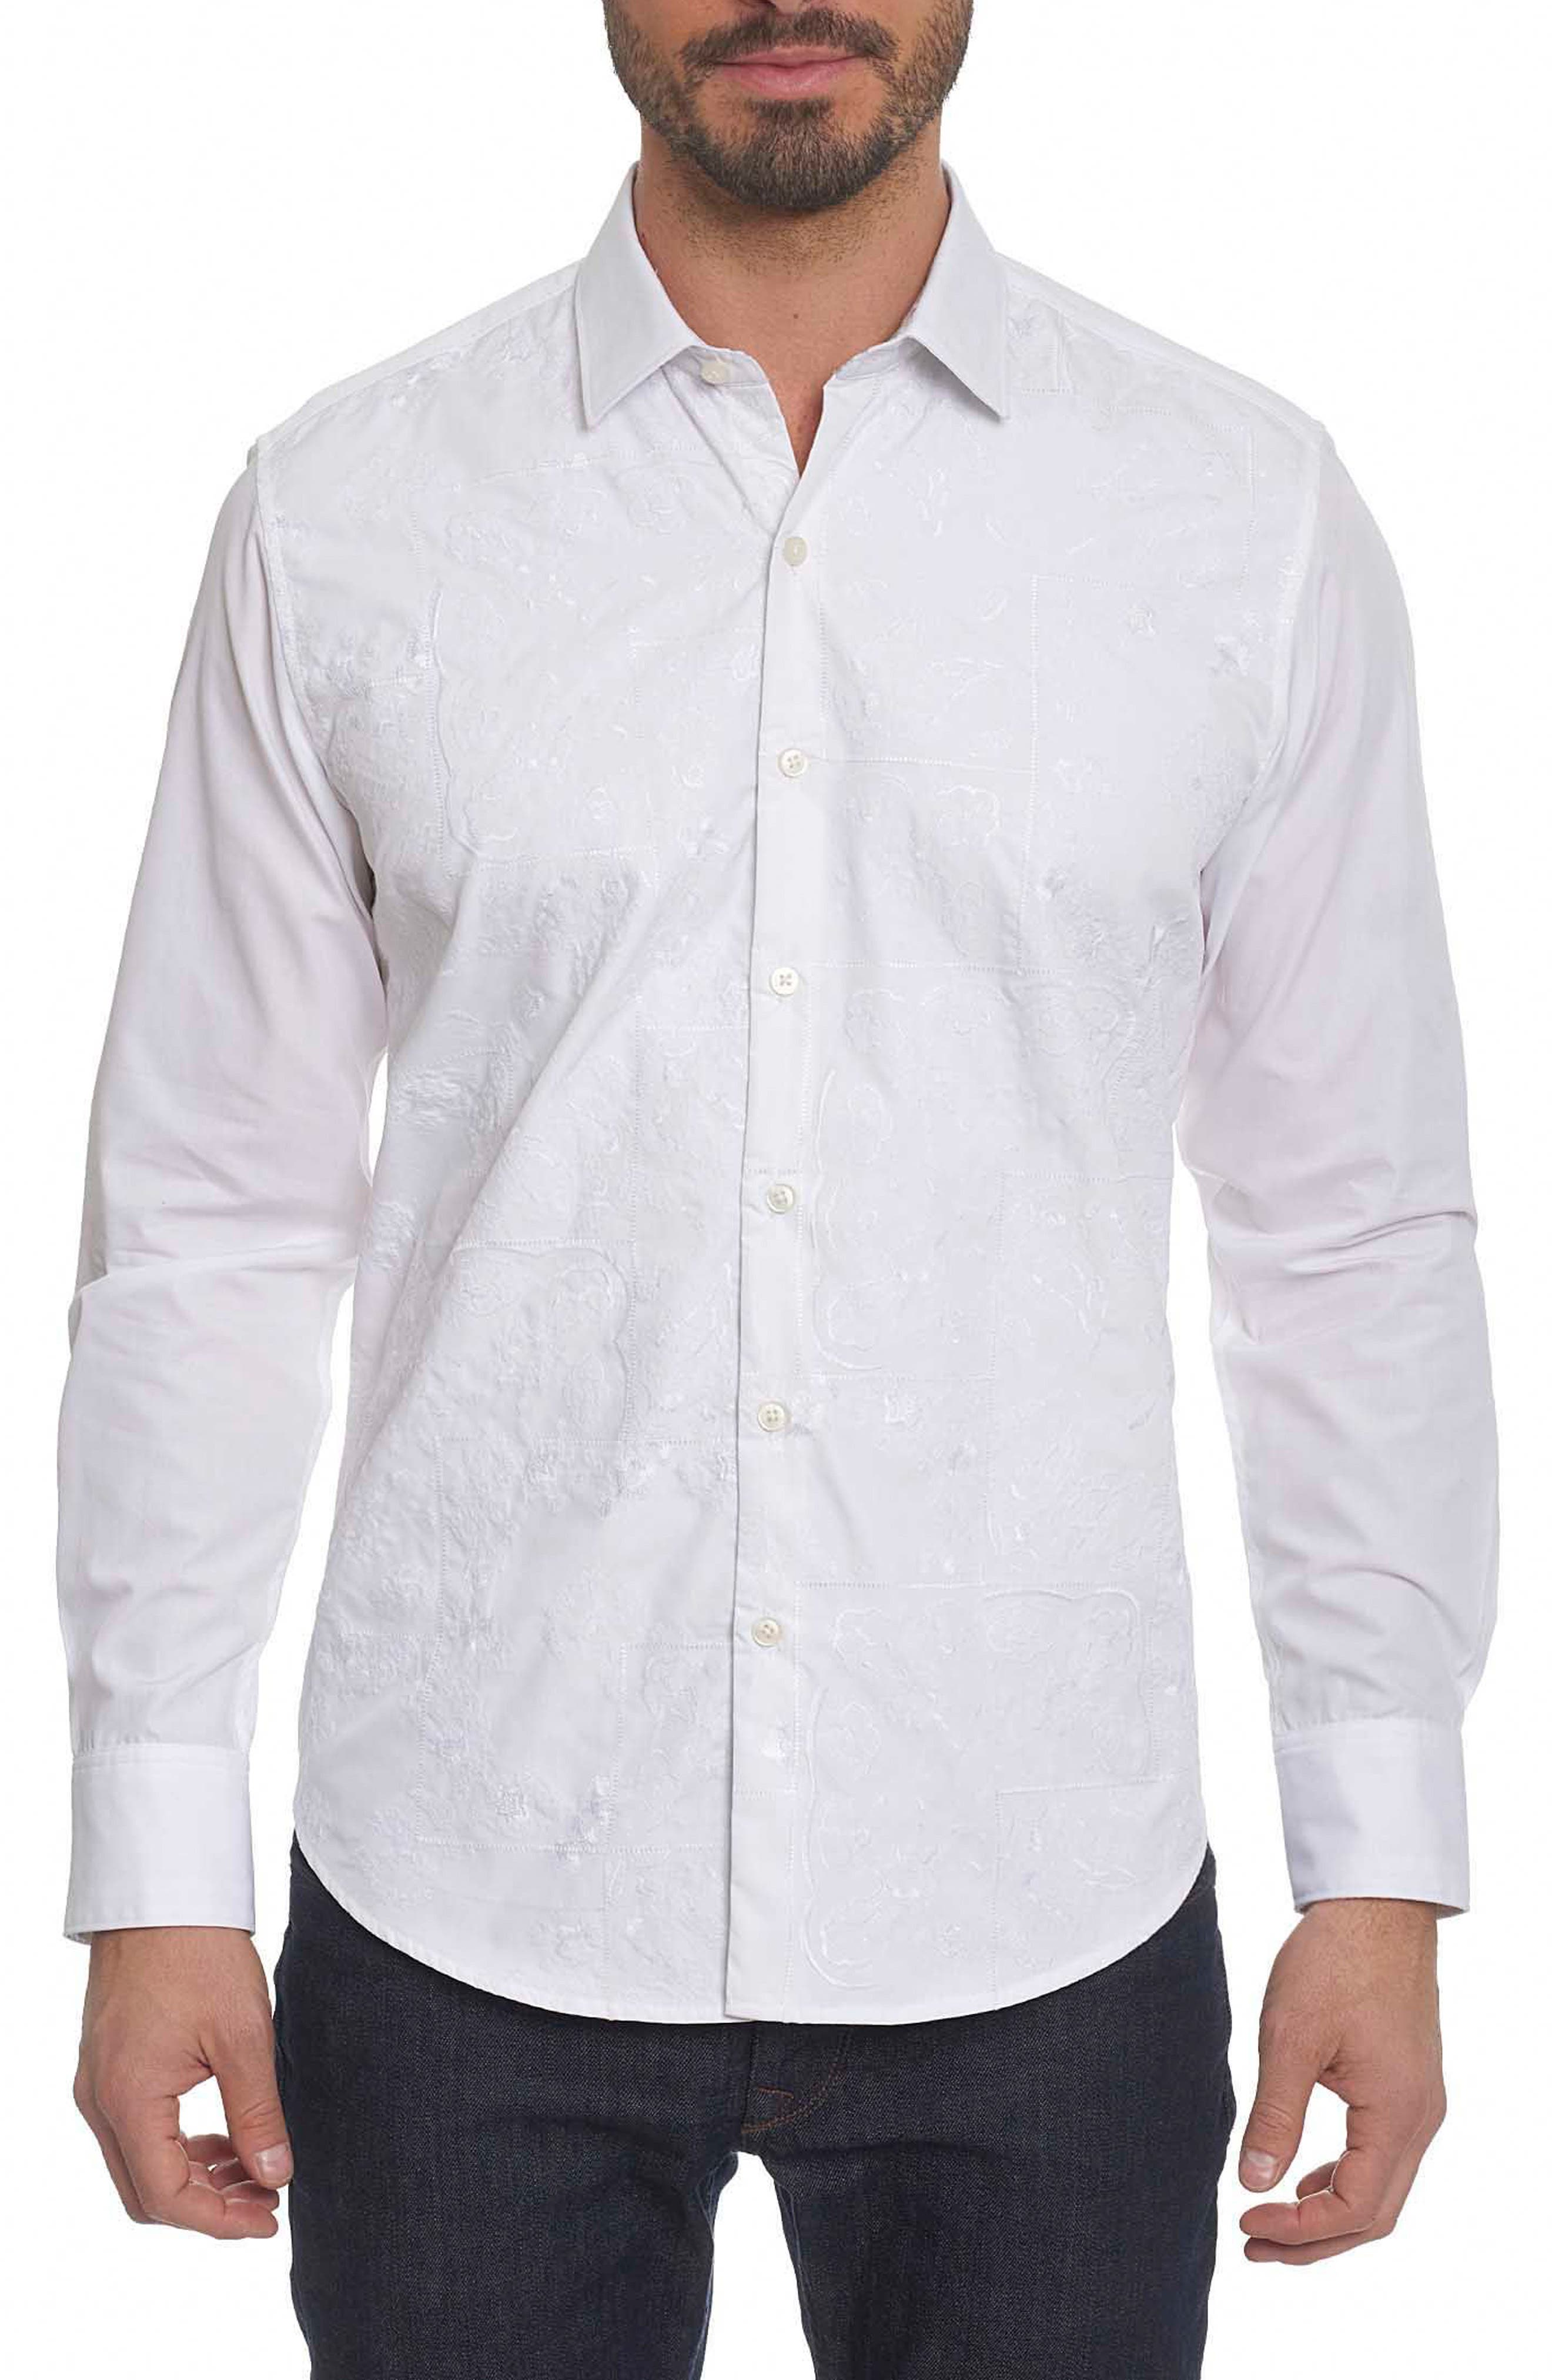 Alternate Image 1 Selected - Robert Graham Onyx Classic Fit Embroidered Sport Shirt